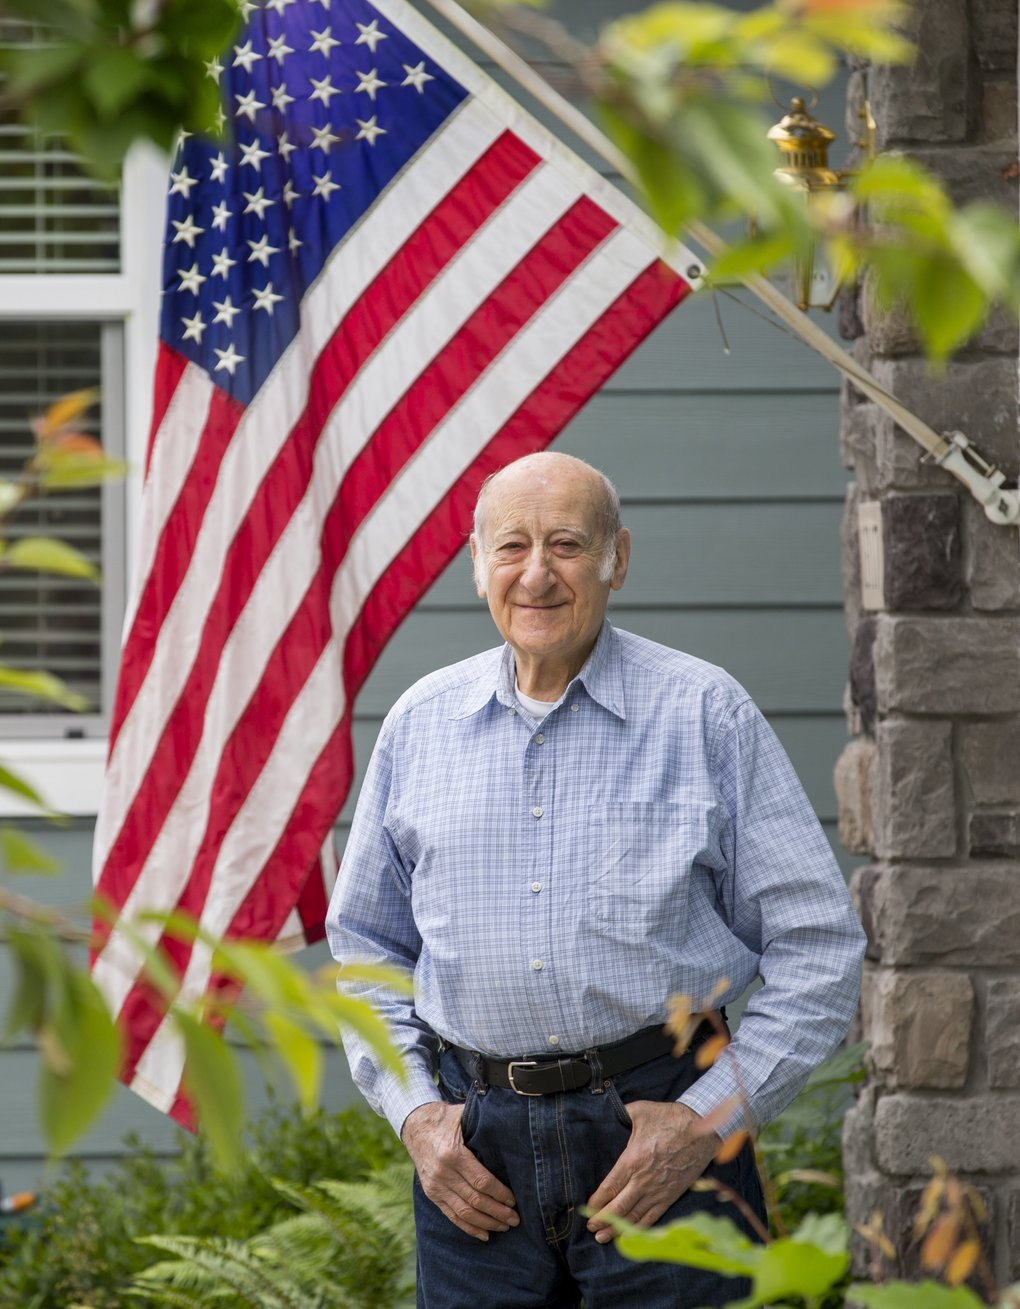 """Retired Boeing engineer David Huntman worked on many projects, including the """"Peacekeeper"""" intercontinental ballistic missile and the secret """"Condor"""" drone program. (Mike Siegel / The Seattle Times)"""